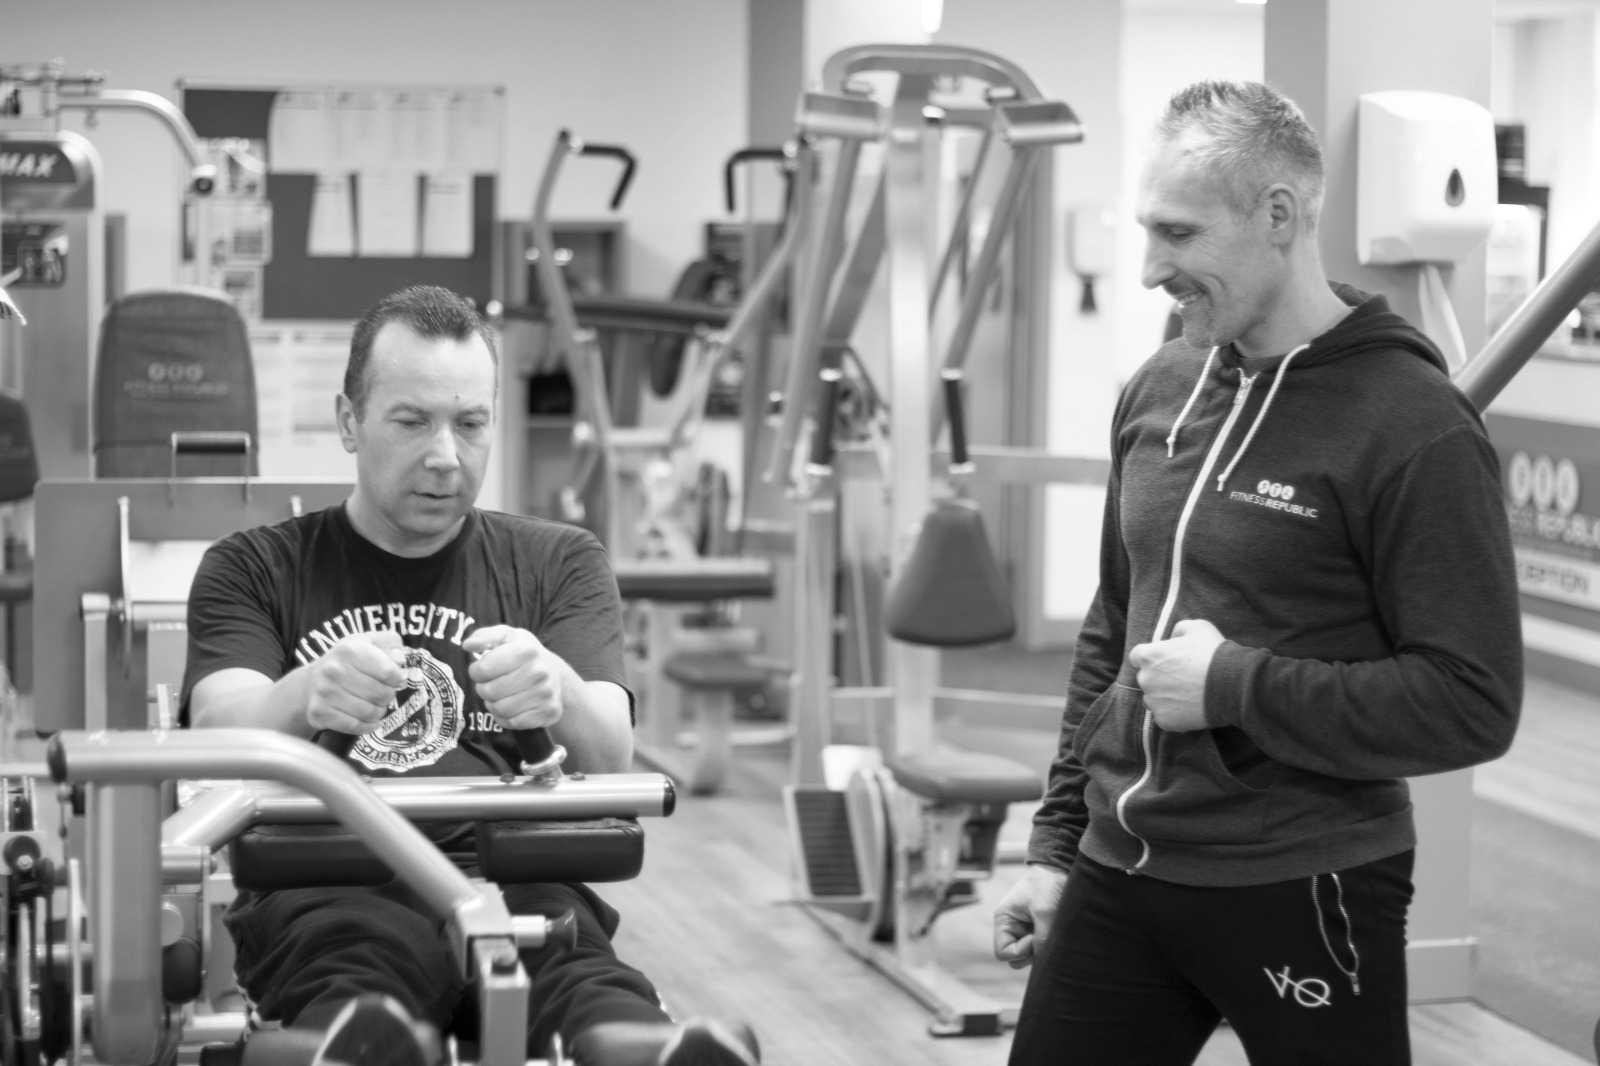 Black and white picture of to men in a gym